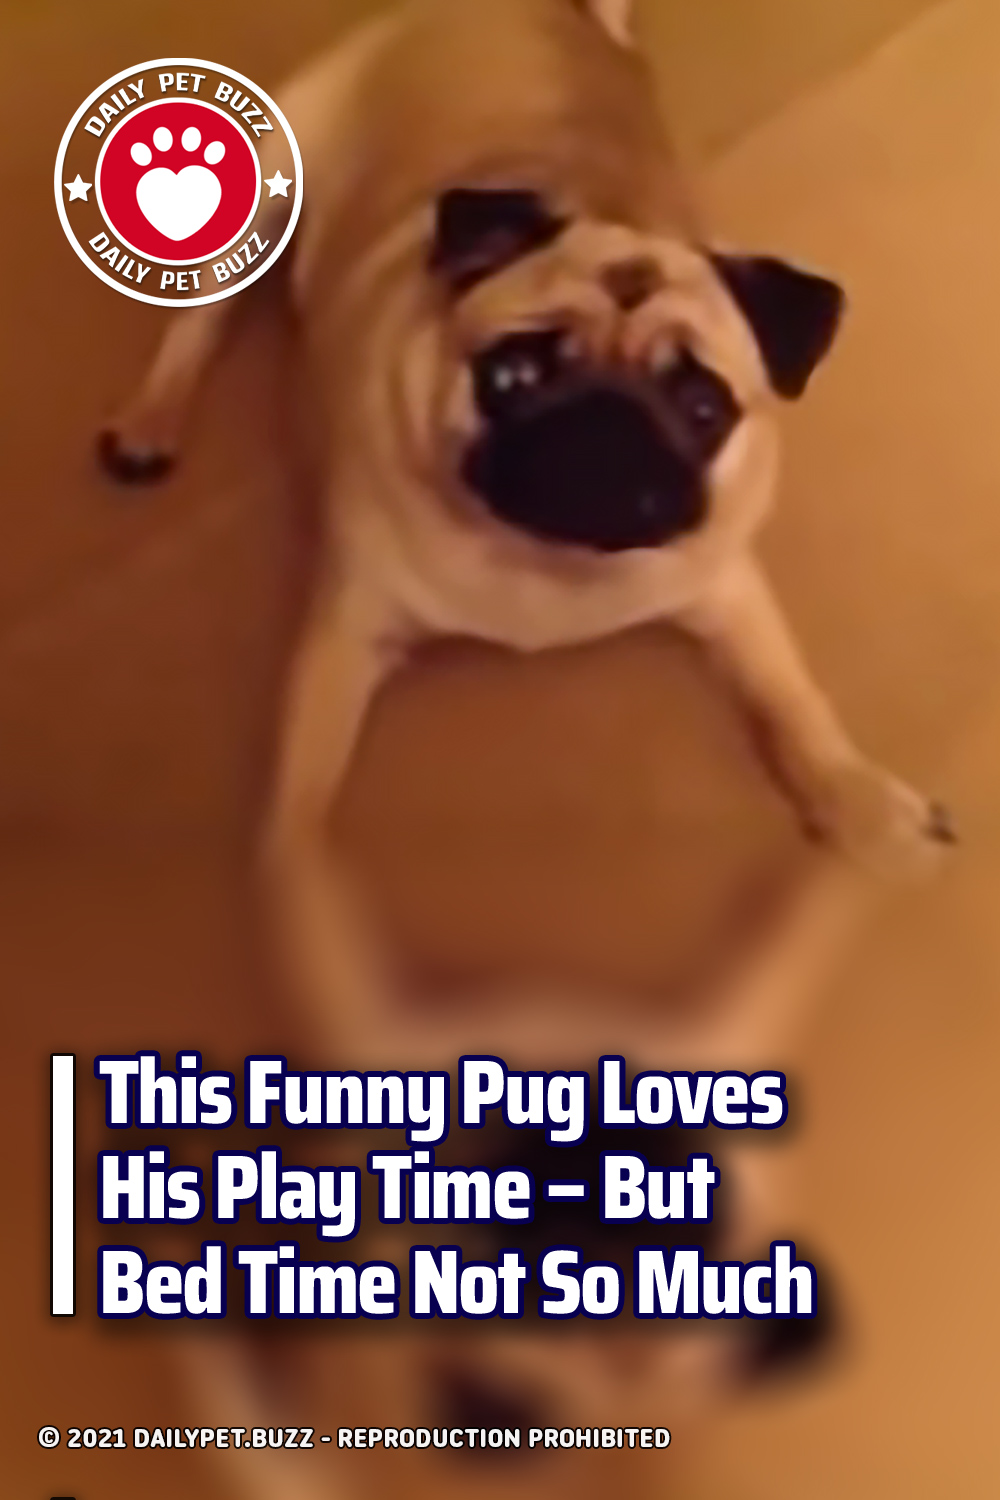 This Funny Pug Loves His Play Time – But Bed Time Not So Much